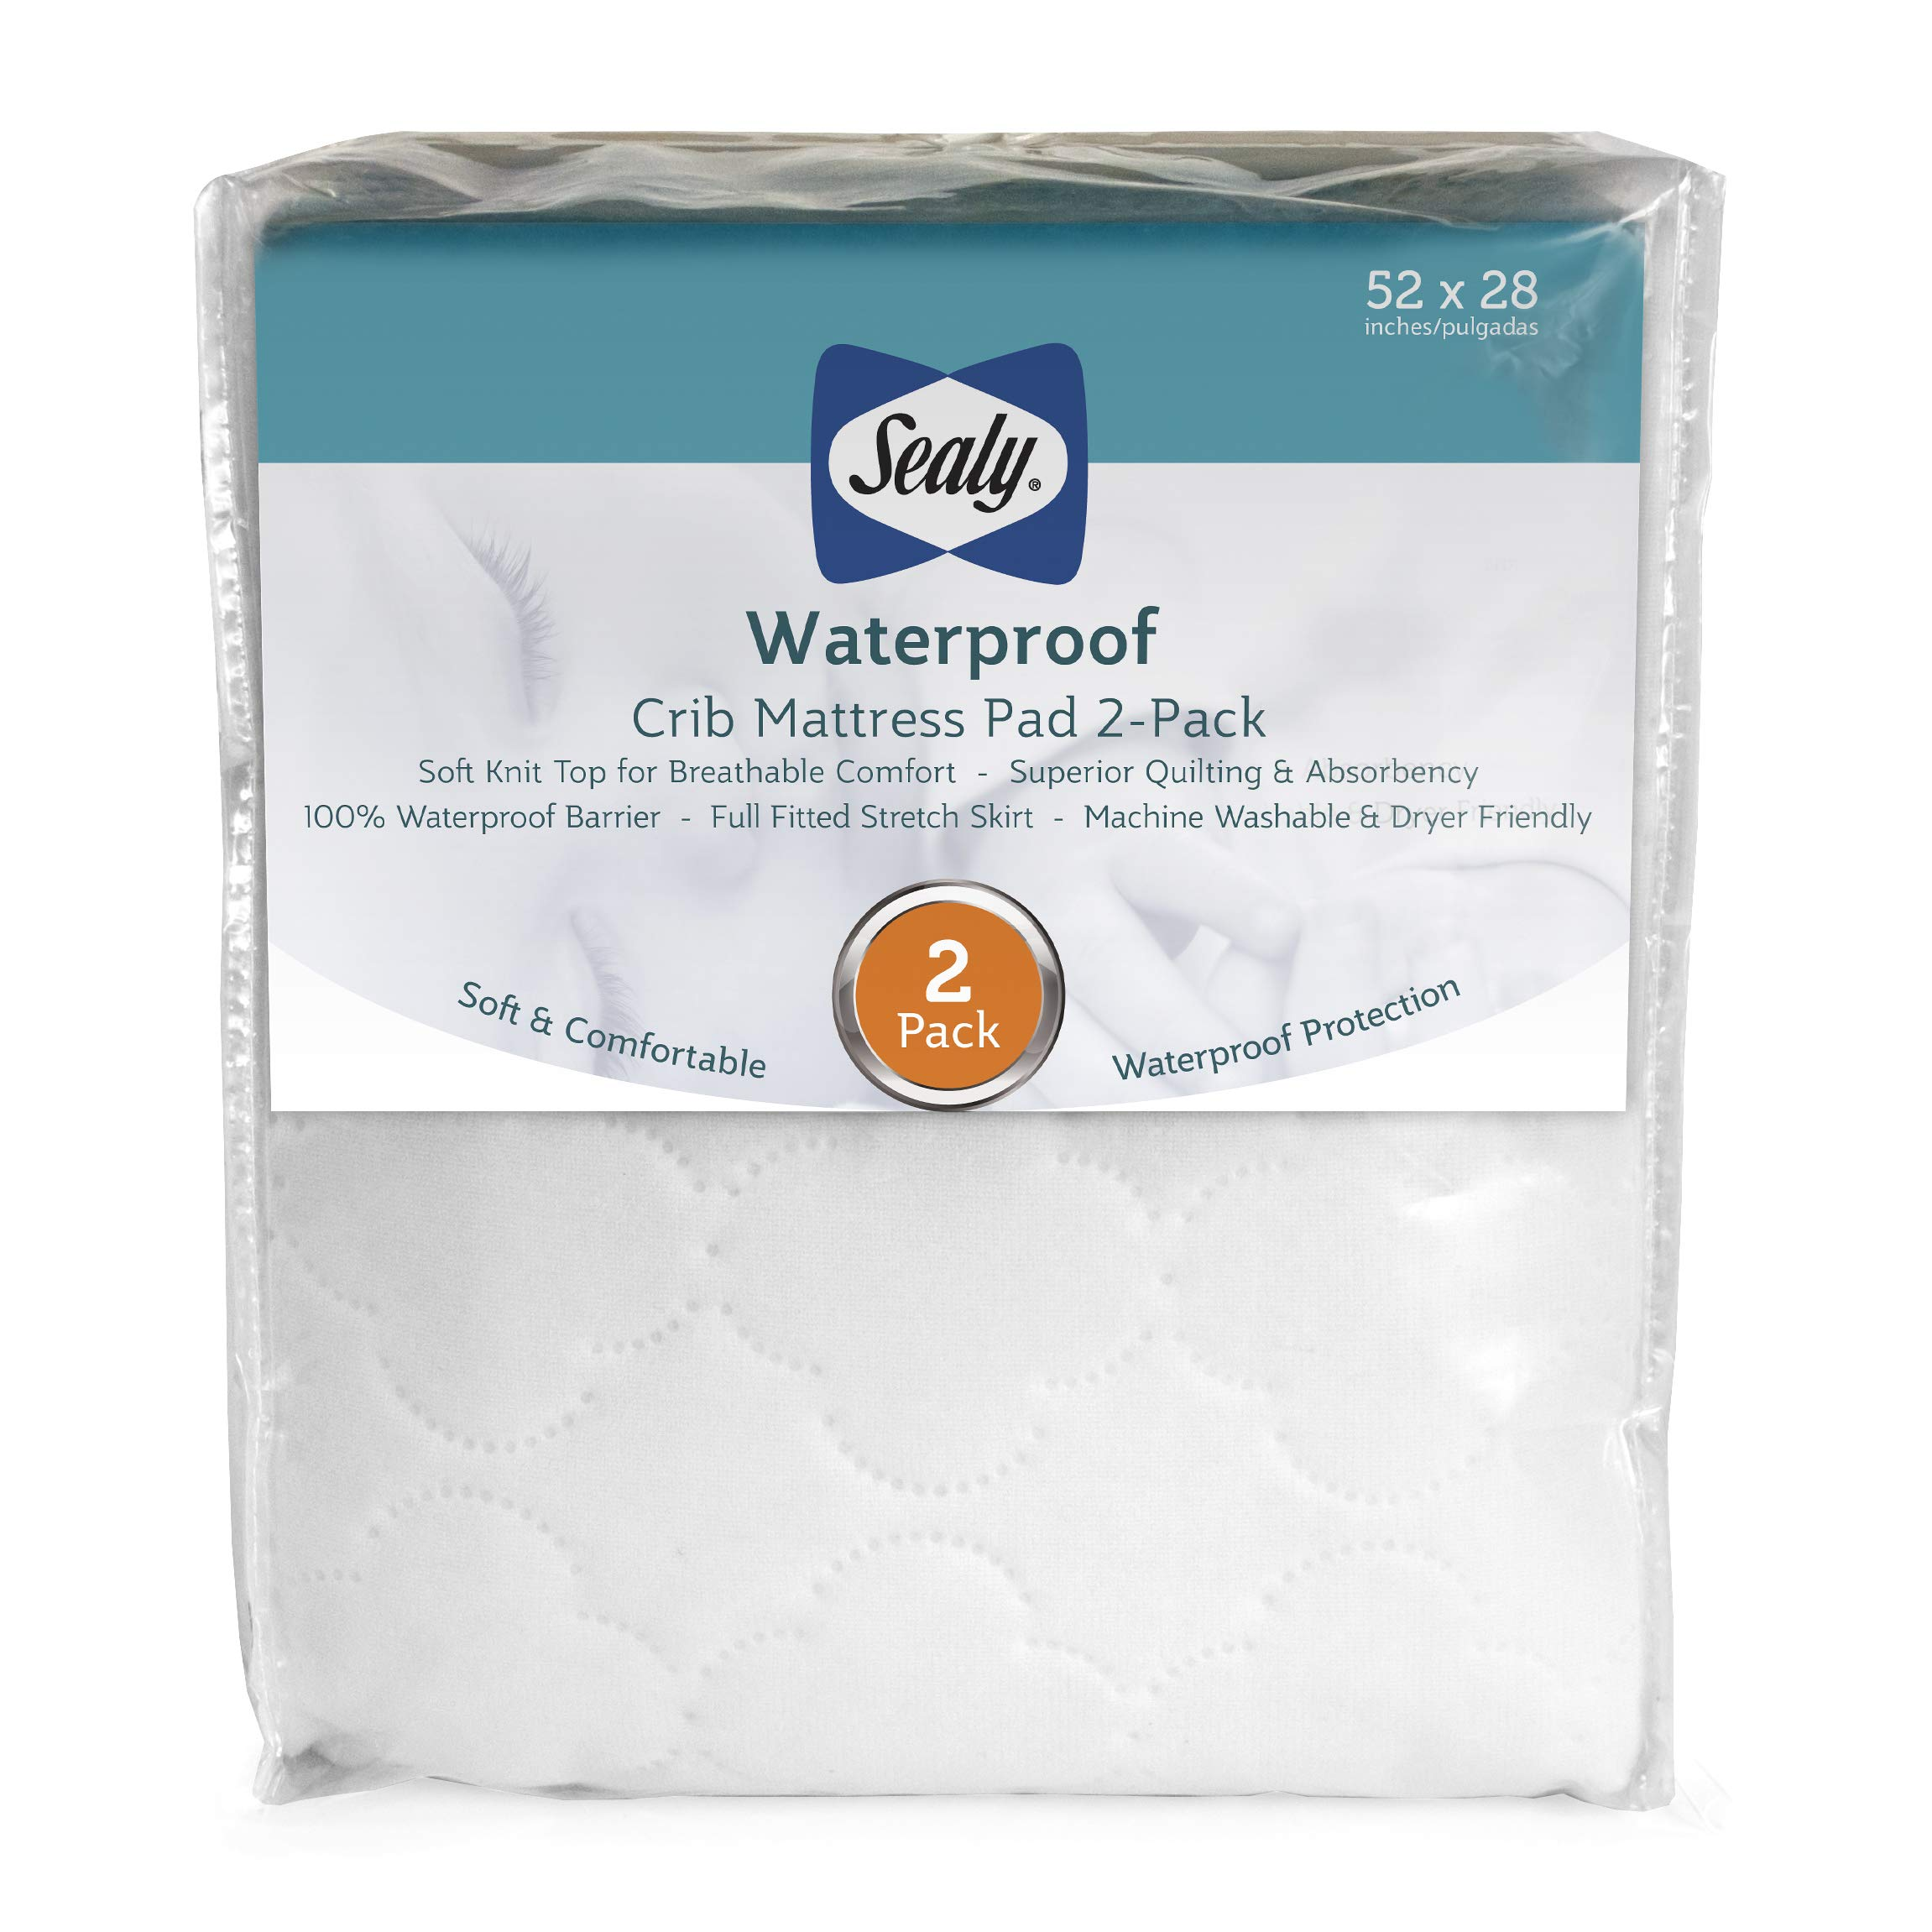 Sealy Waterproof Fitted Toddler and Baby Crib Mattress Pad Cover 2-Pack - 100% Waterproof, White